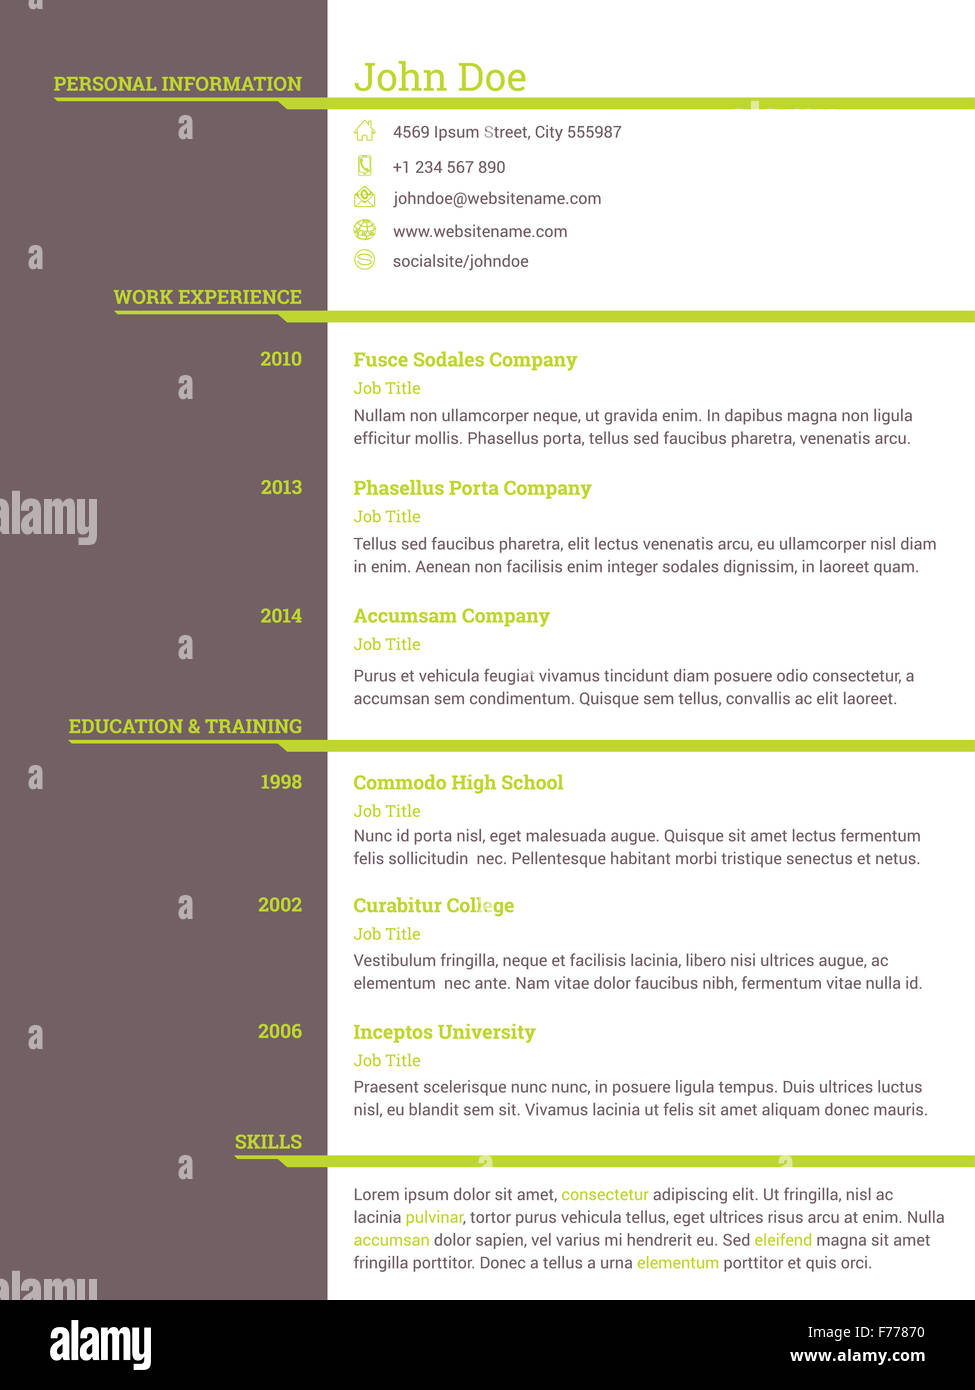 Modern Resume Cv Curriculum Vitae Template Design For Job Seekers  Resume Or Curriculum Vitae